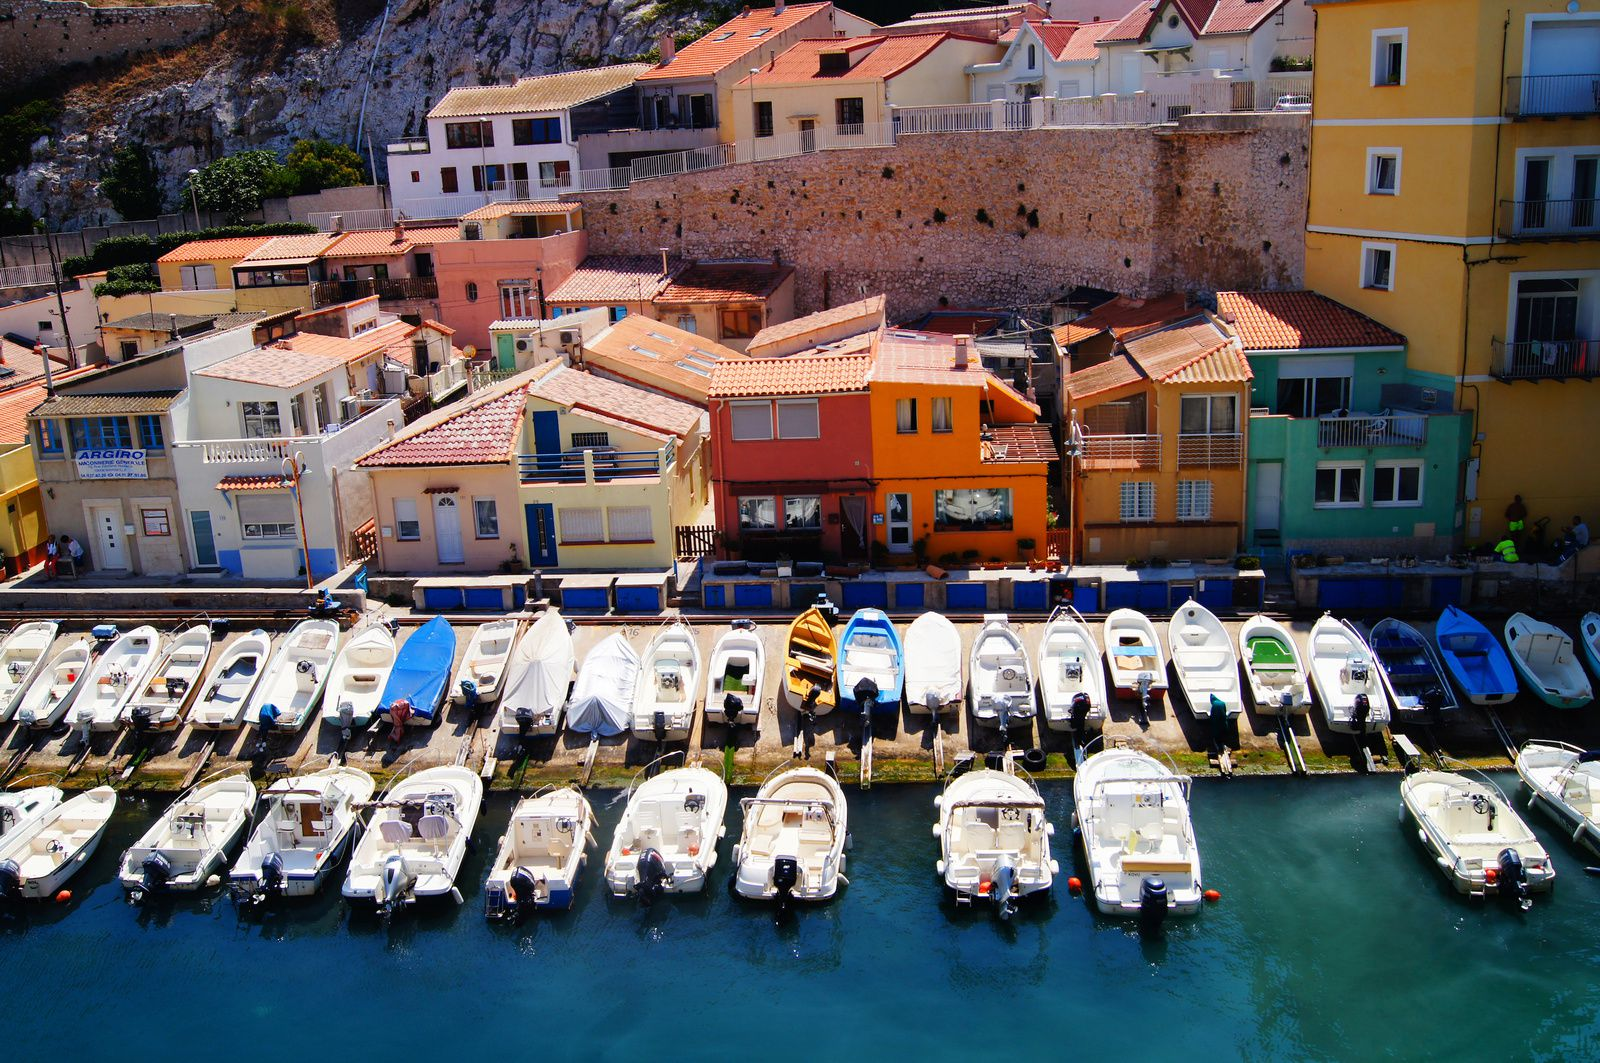 Le vallon des auffes marseille like a bird photography - Le petit cabanon marseille ...